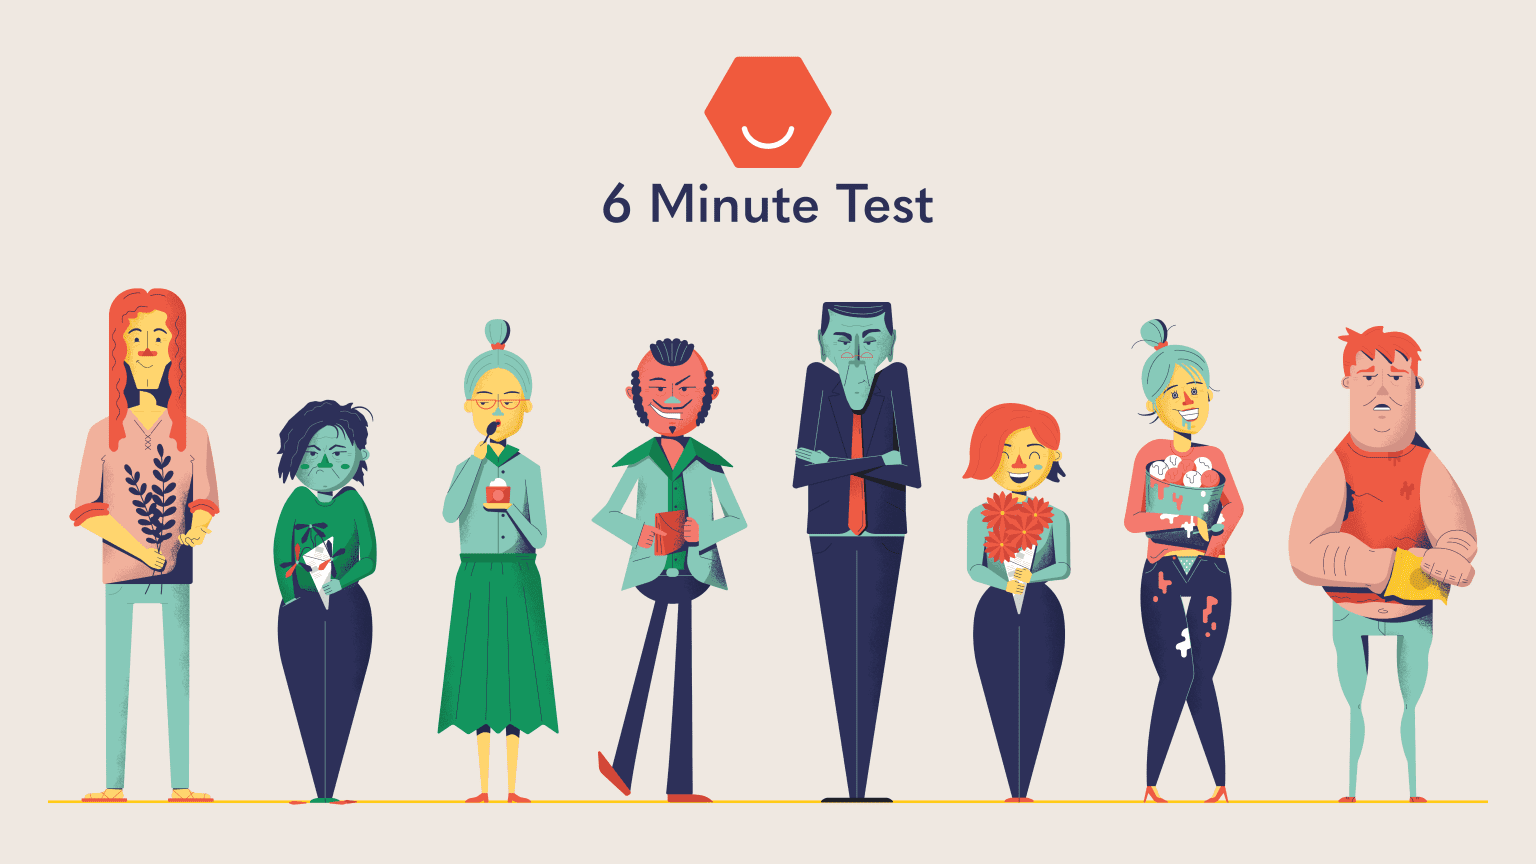 6 Minute Test